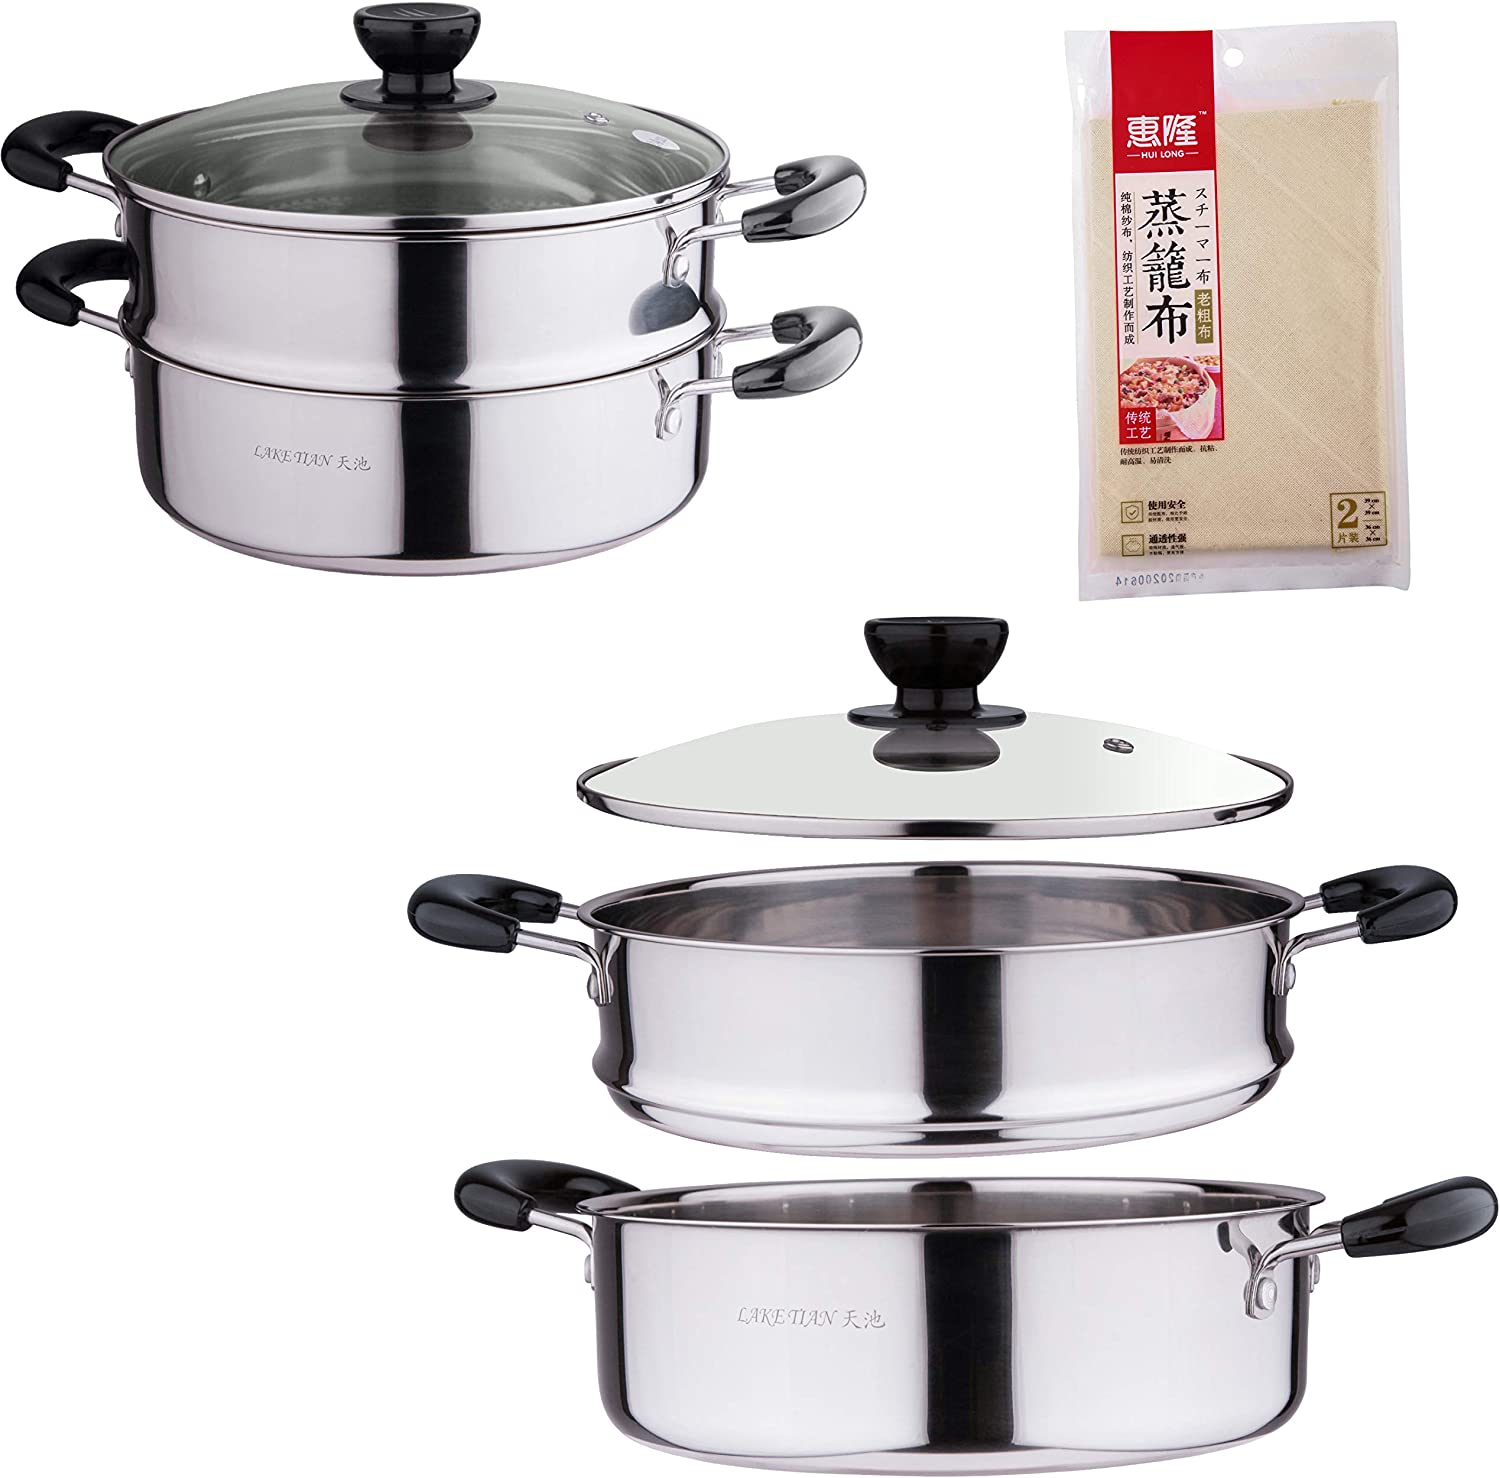 2 Tier Stainless Steel Steamer for Cooking w/Liner, Vegetable Steamer, Double Boiler Pot, Steamer Pot Cookware Pot with Lid, Heavy Duty Induction, 10 Quart by LakeTian (26cm/ 10″)